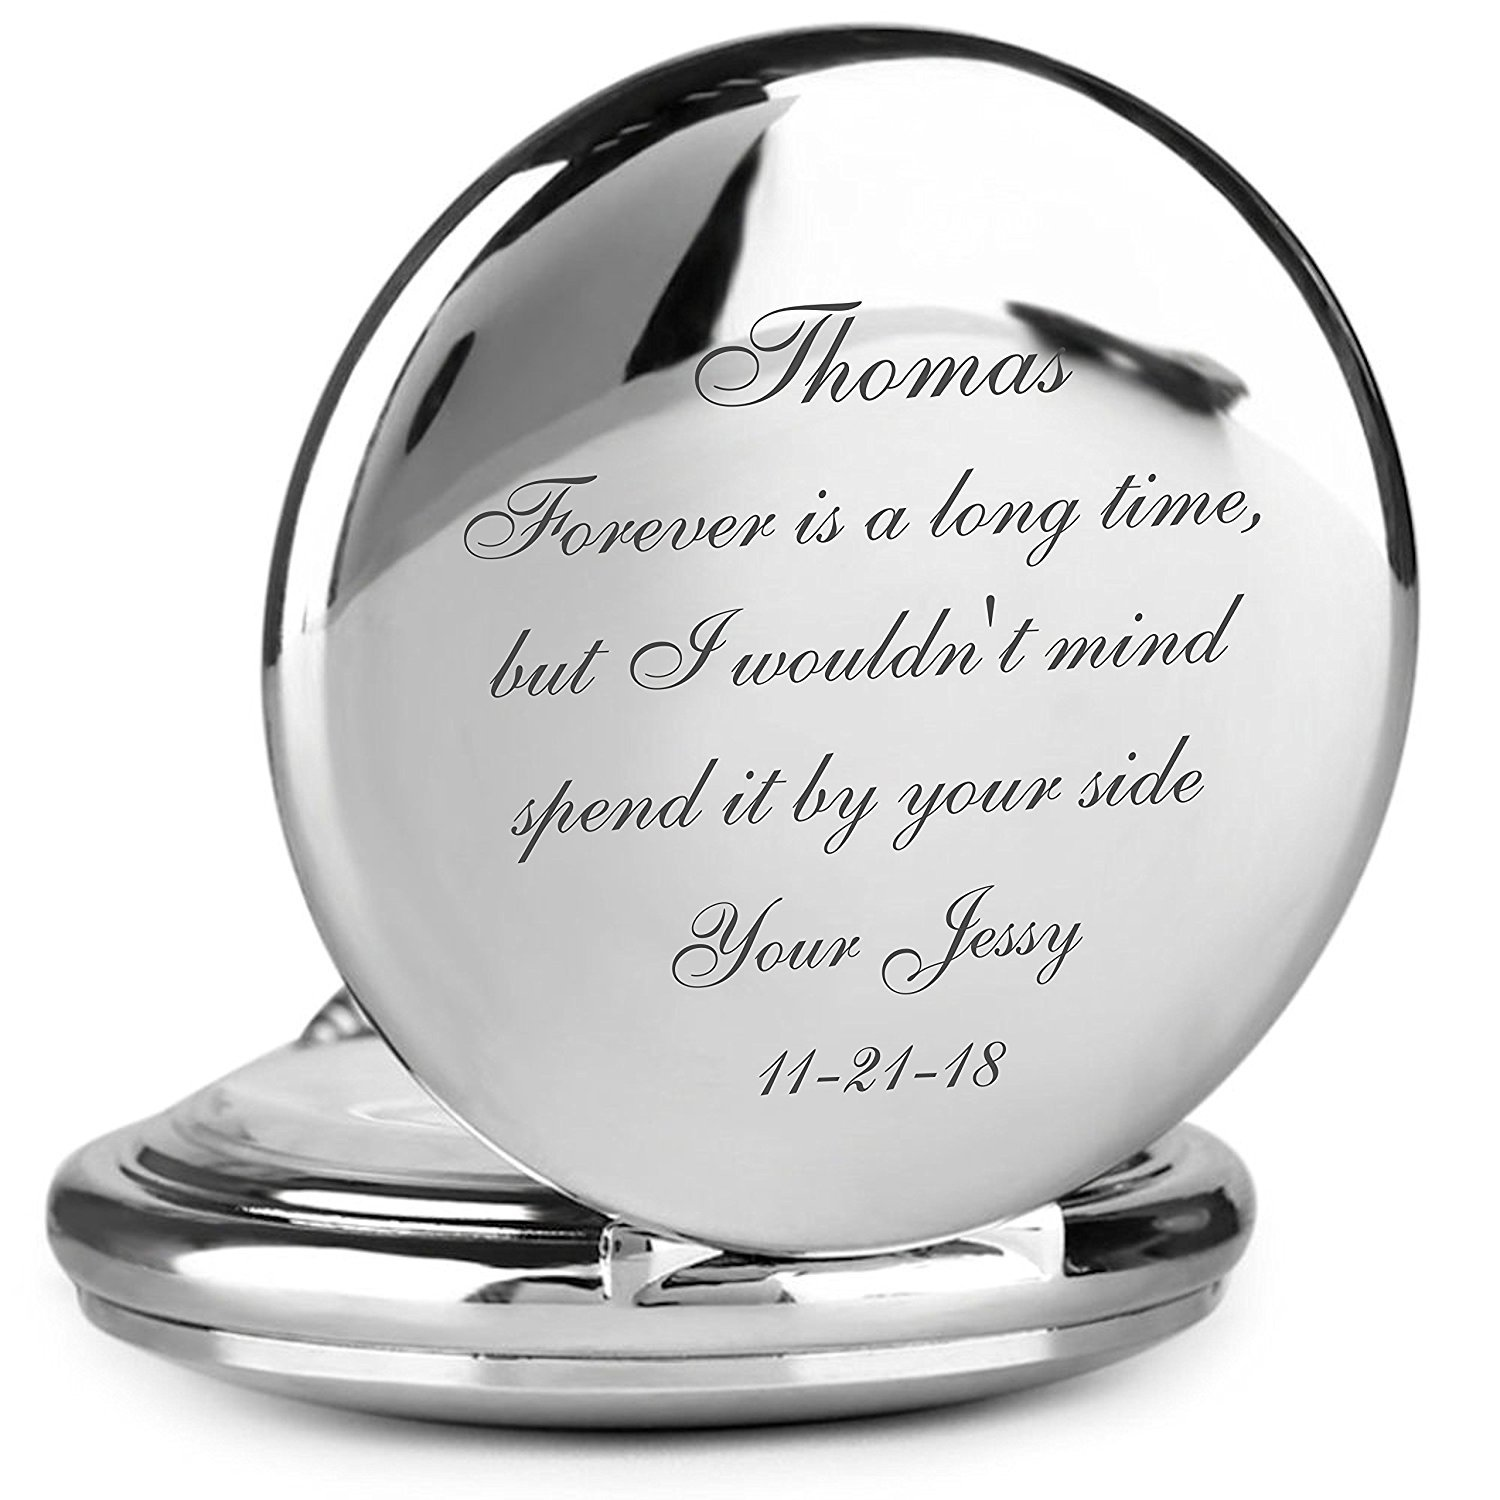 Personalized Silver Stainless Steel Pocket Watch Engraved Free |